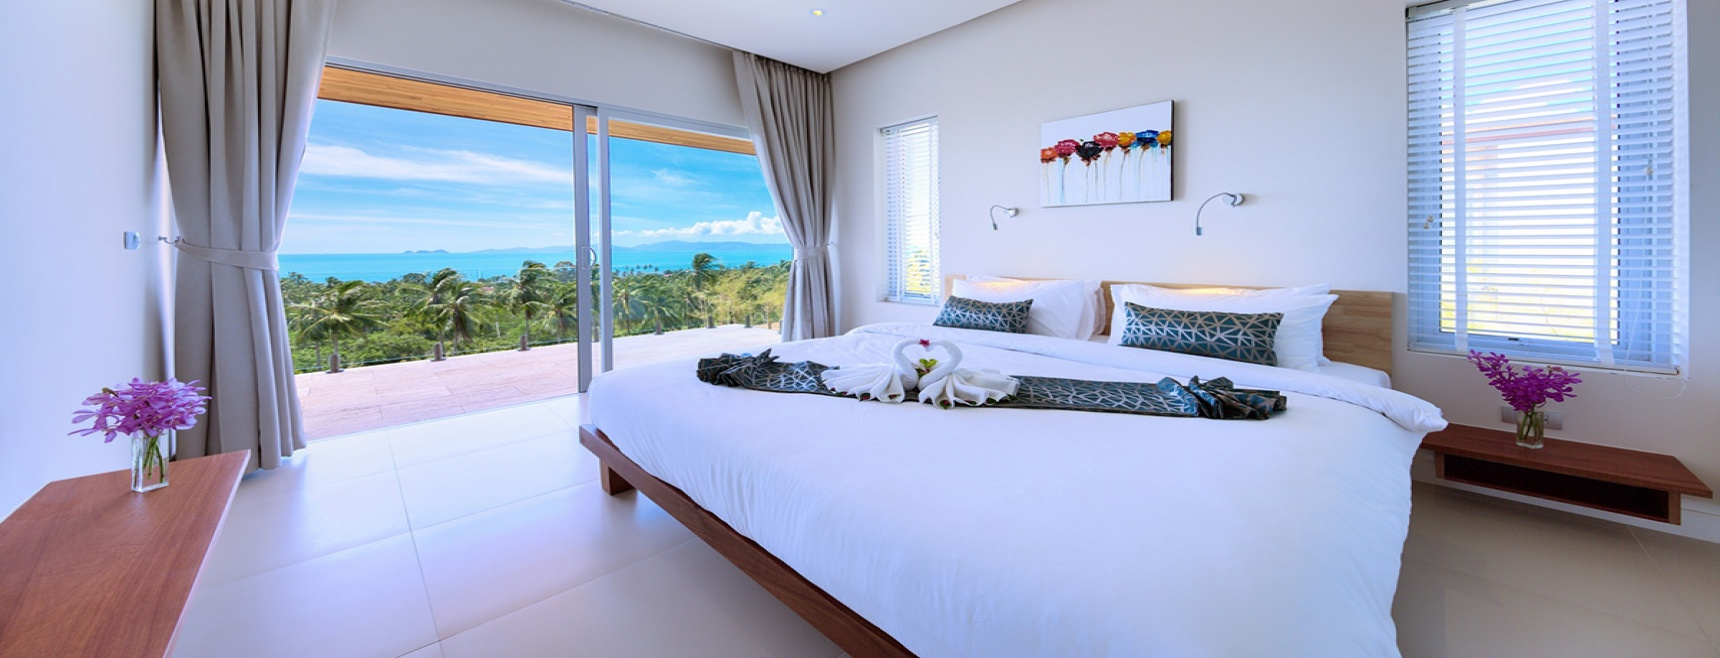 6 Bedrooms, Villa, Residential Sales, 6 Bathrooms, Listing ID 1045, Bang Po, North West, Koh Samui,